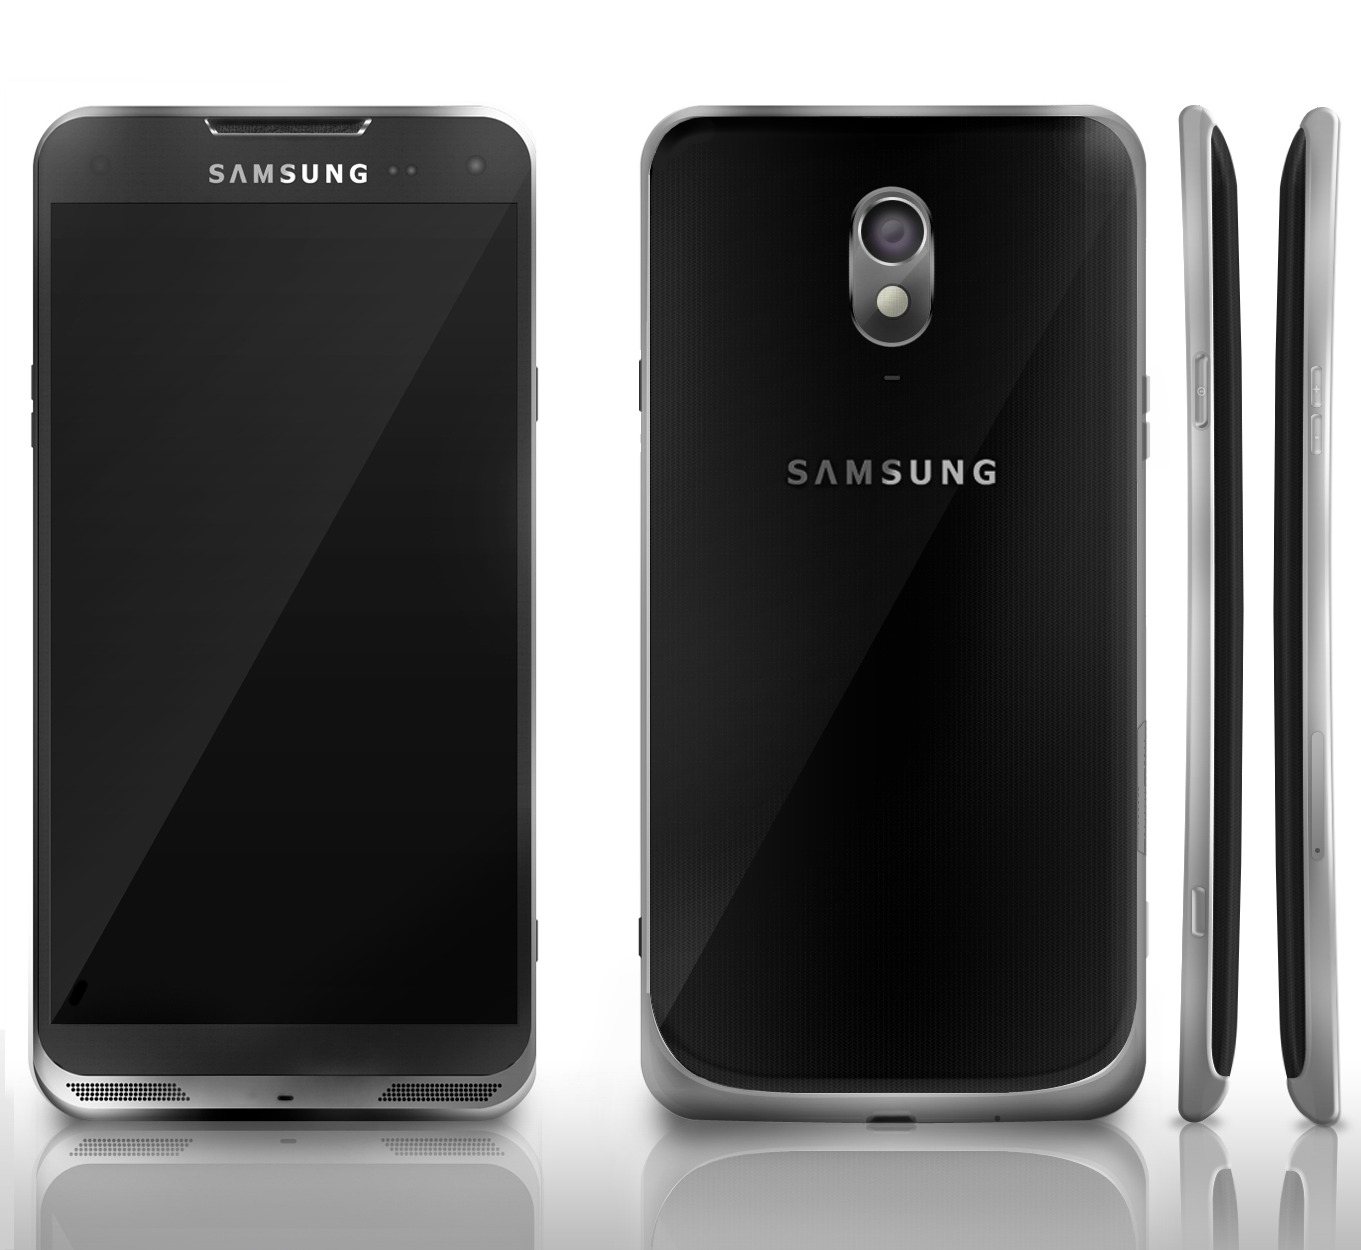 The Samsung Galaxy S IV will be announced at an event on March 14th in